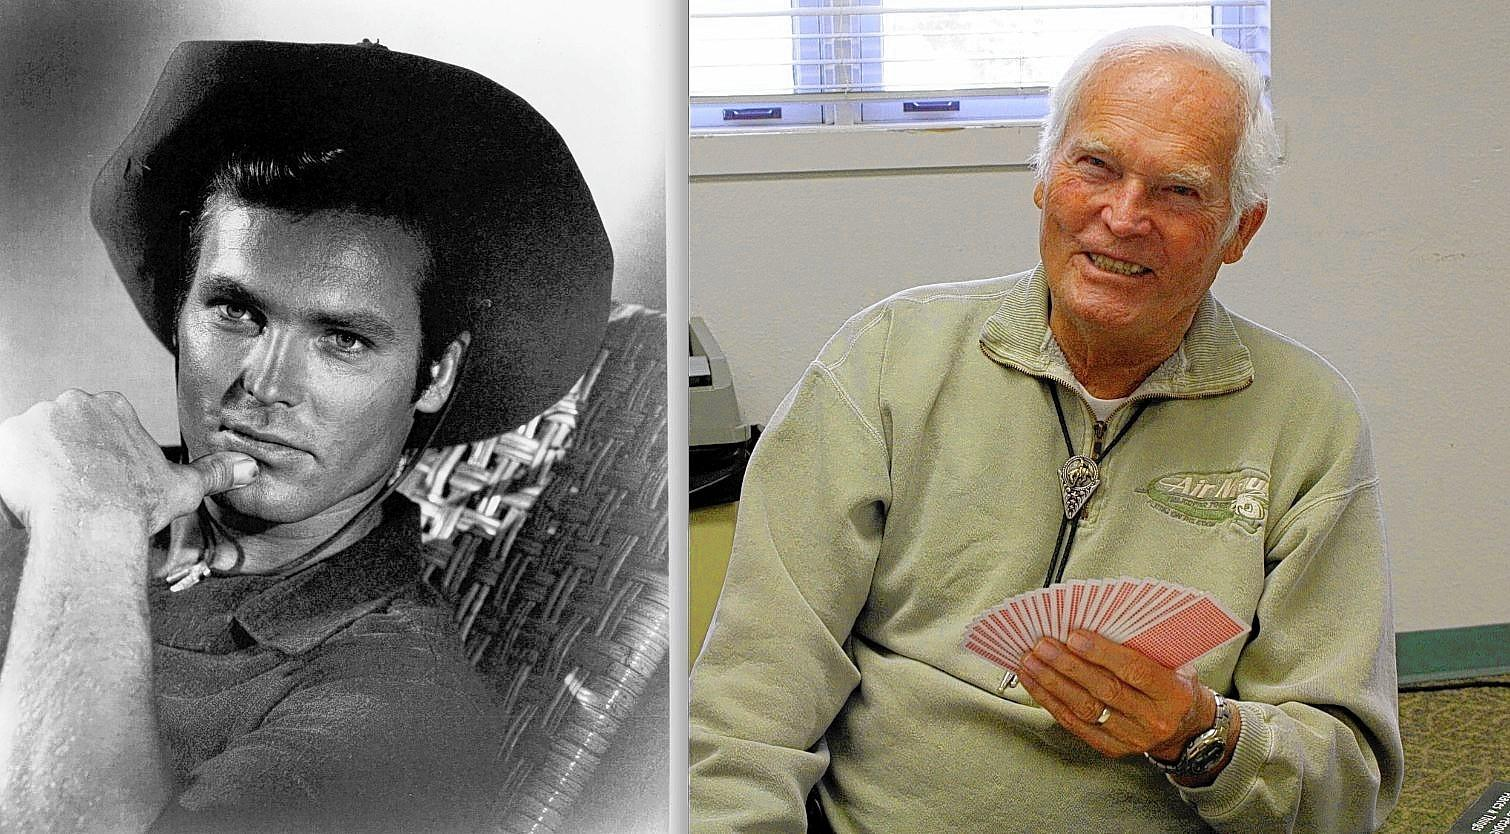 Ty Hardin, who starred in many Westerns and TV shows back in the 1950s and 60s. At right, he plays cards at the Rodgers' Senior Center in Huntington Beach.